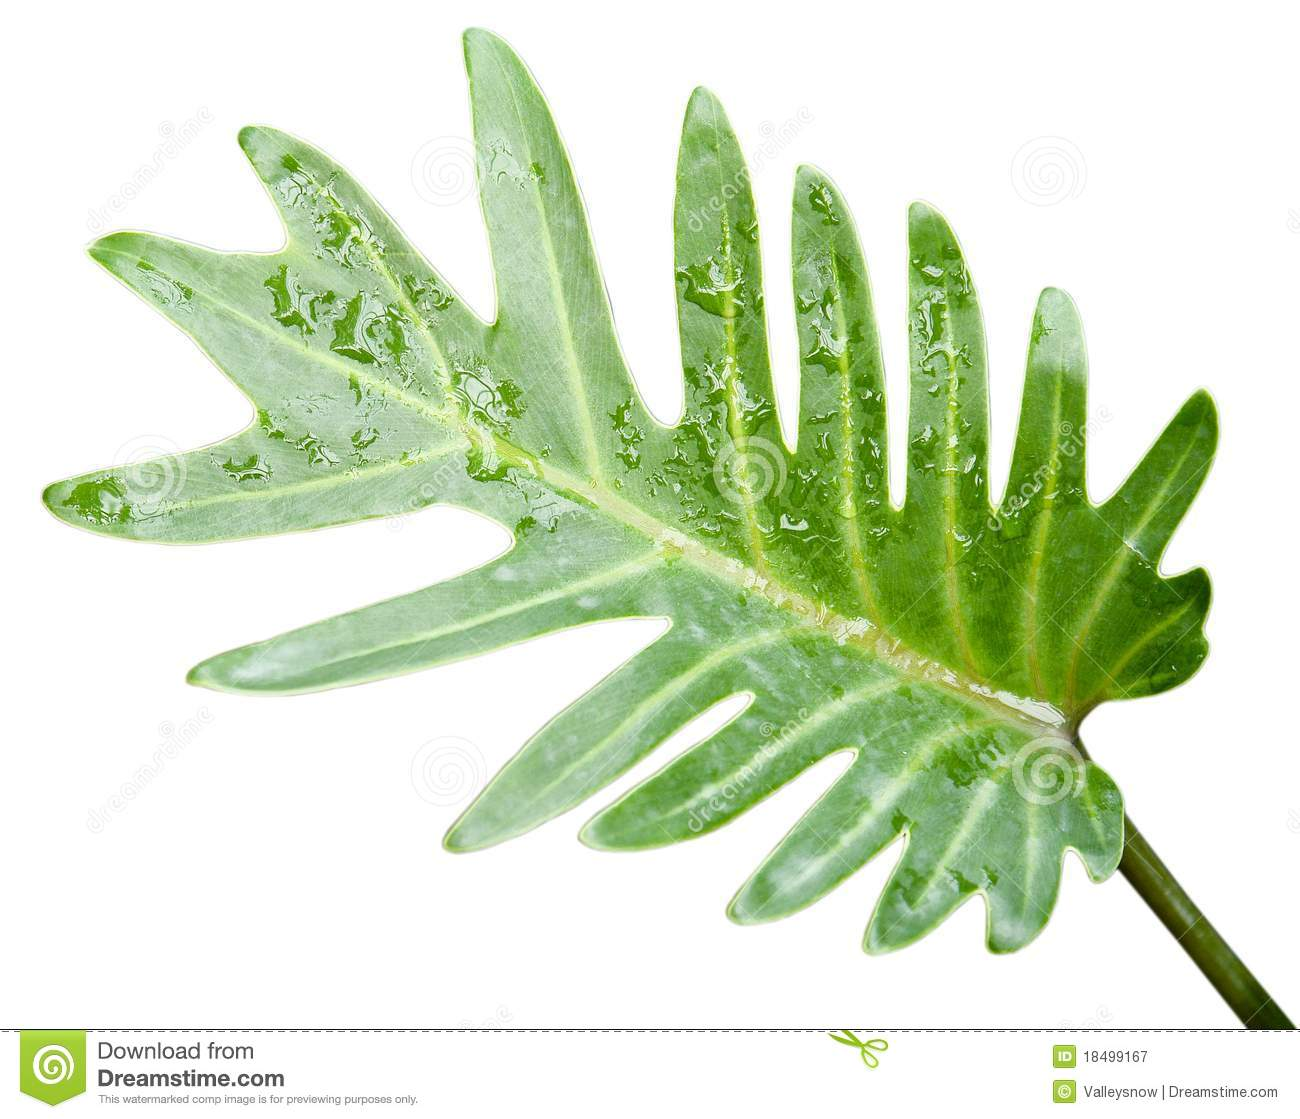 ... in the jungle damp place, such as bird's nest shape of the leaves